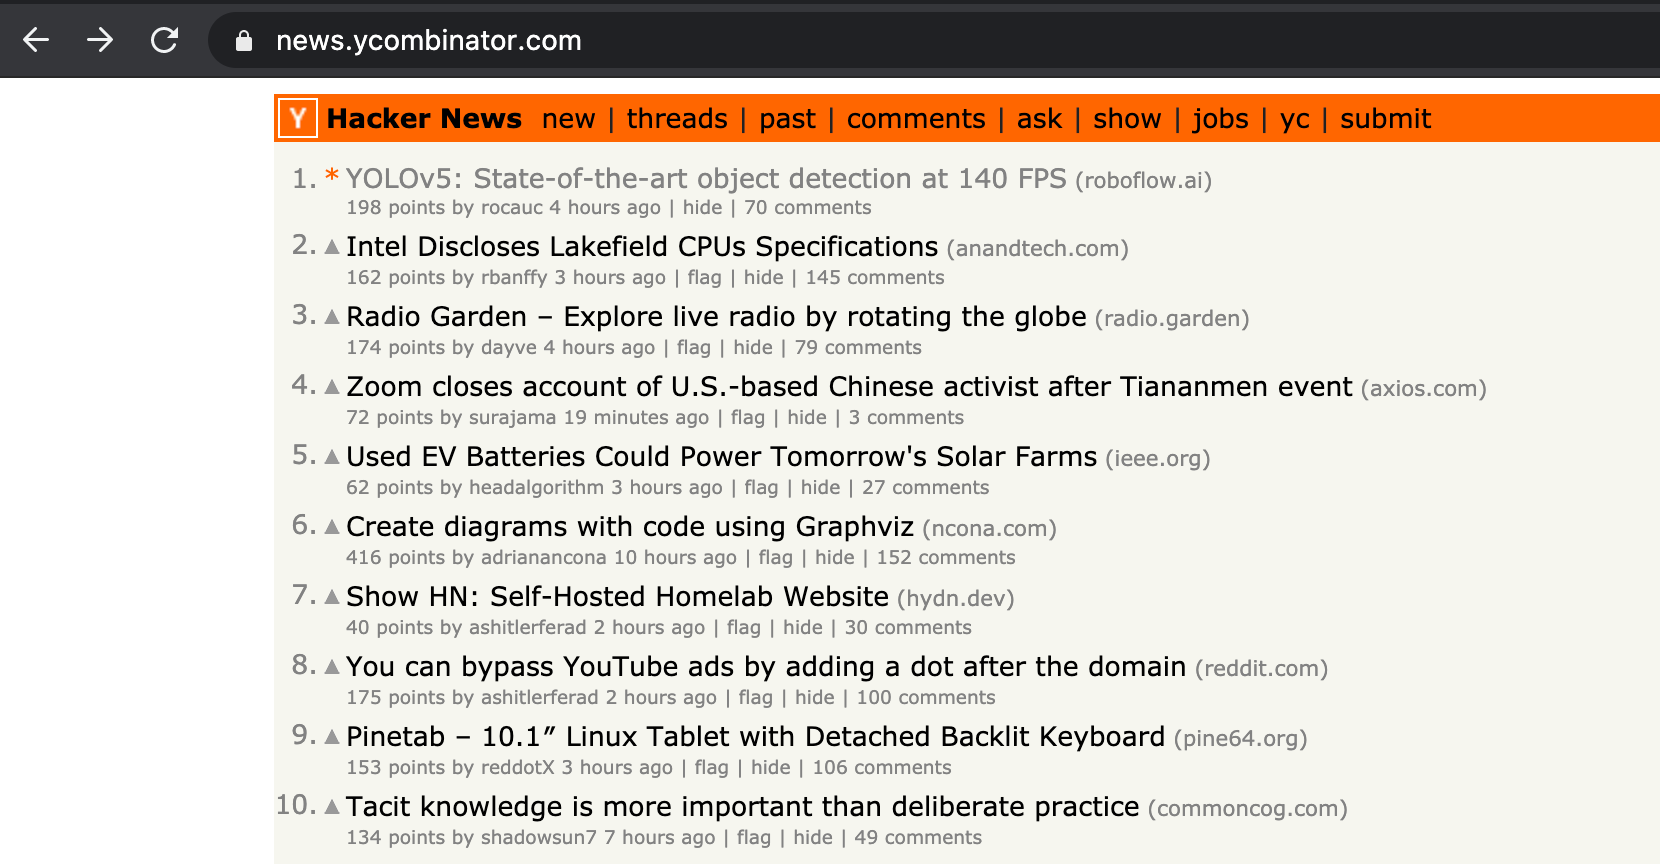 Hacker News Screenshot. 1. YOLOv5: State-of-the-art object detection at 140 FPS